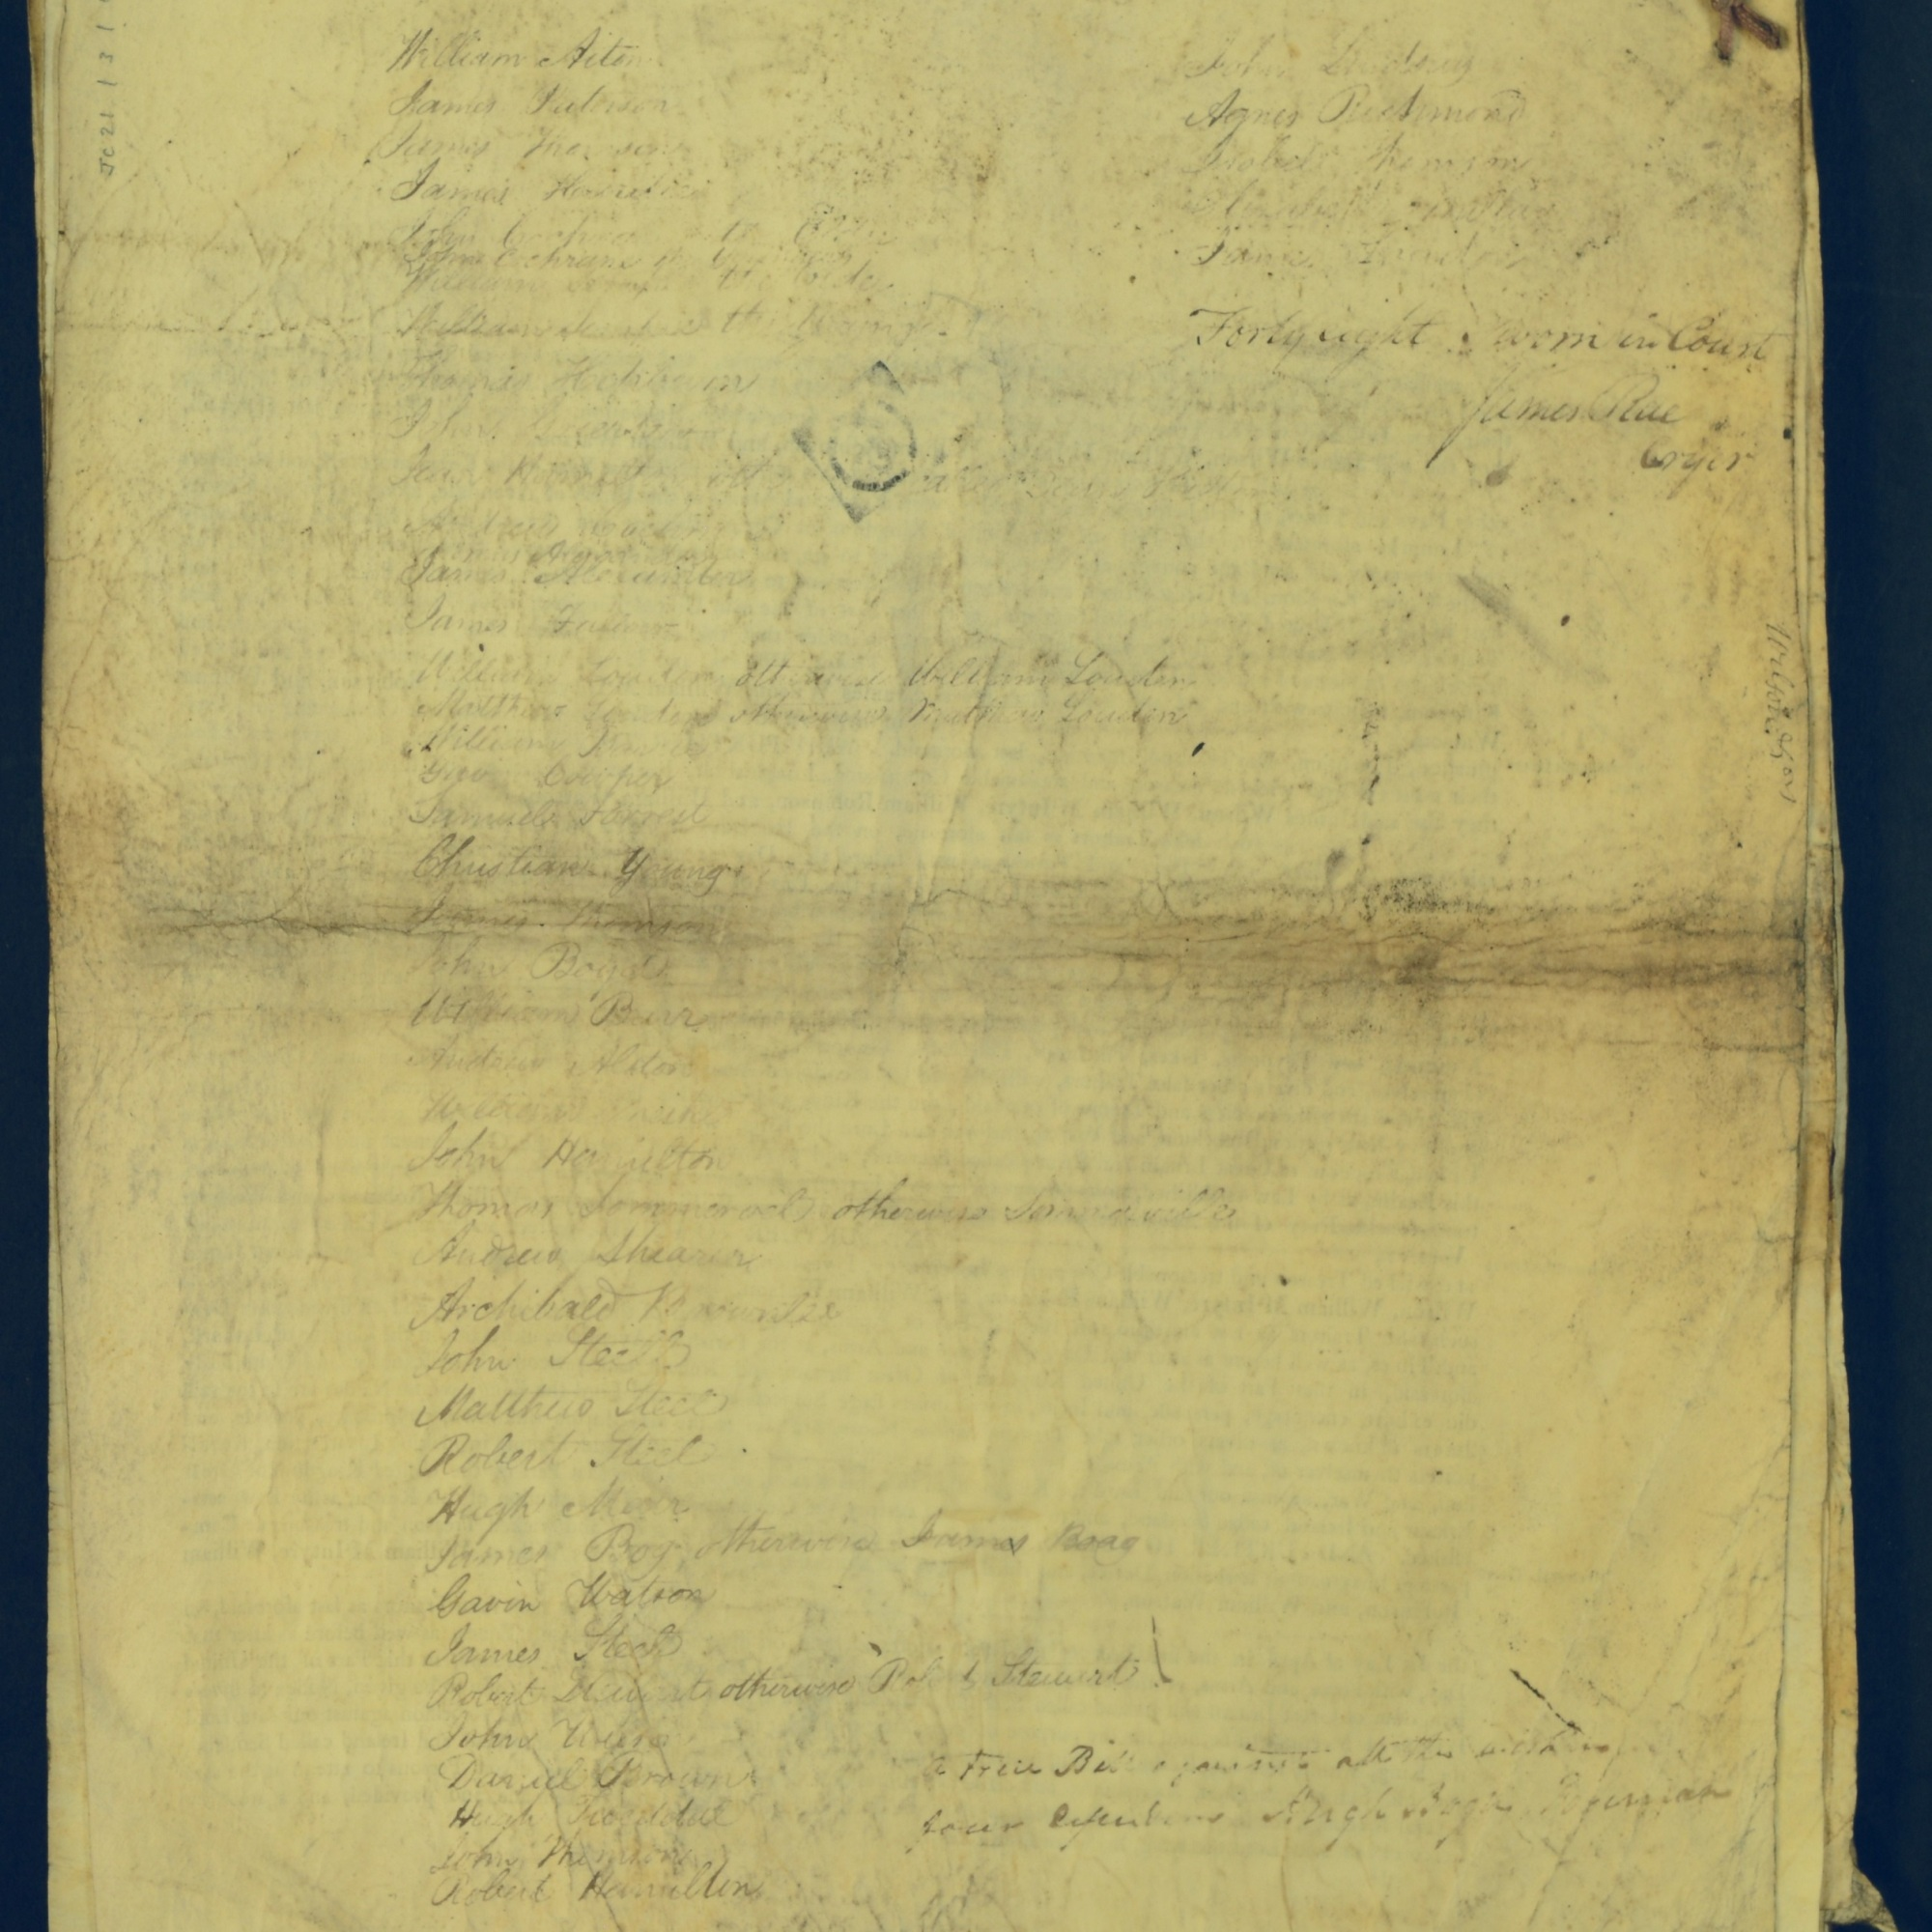 Treason Trials for the County of Lanark, the Strathaven Case. True bills found against four men, James Wilson, William McIntyre, William Robinson and William Watson. National Records of Scotland, Crown copyright, JC21/3/4 p19